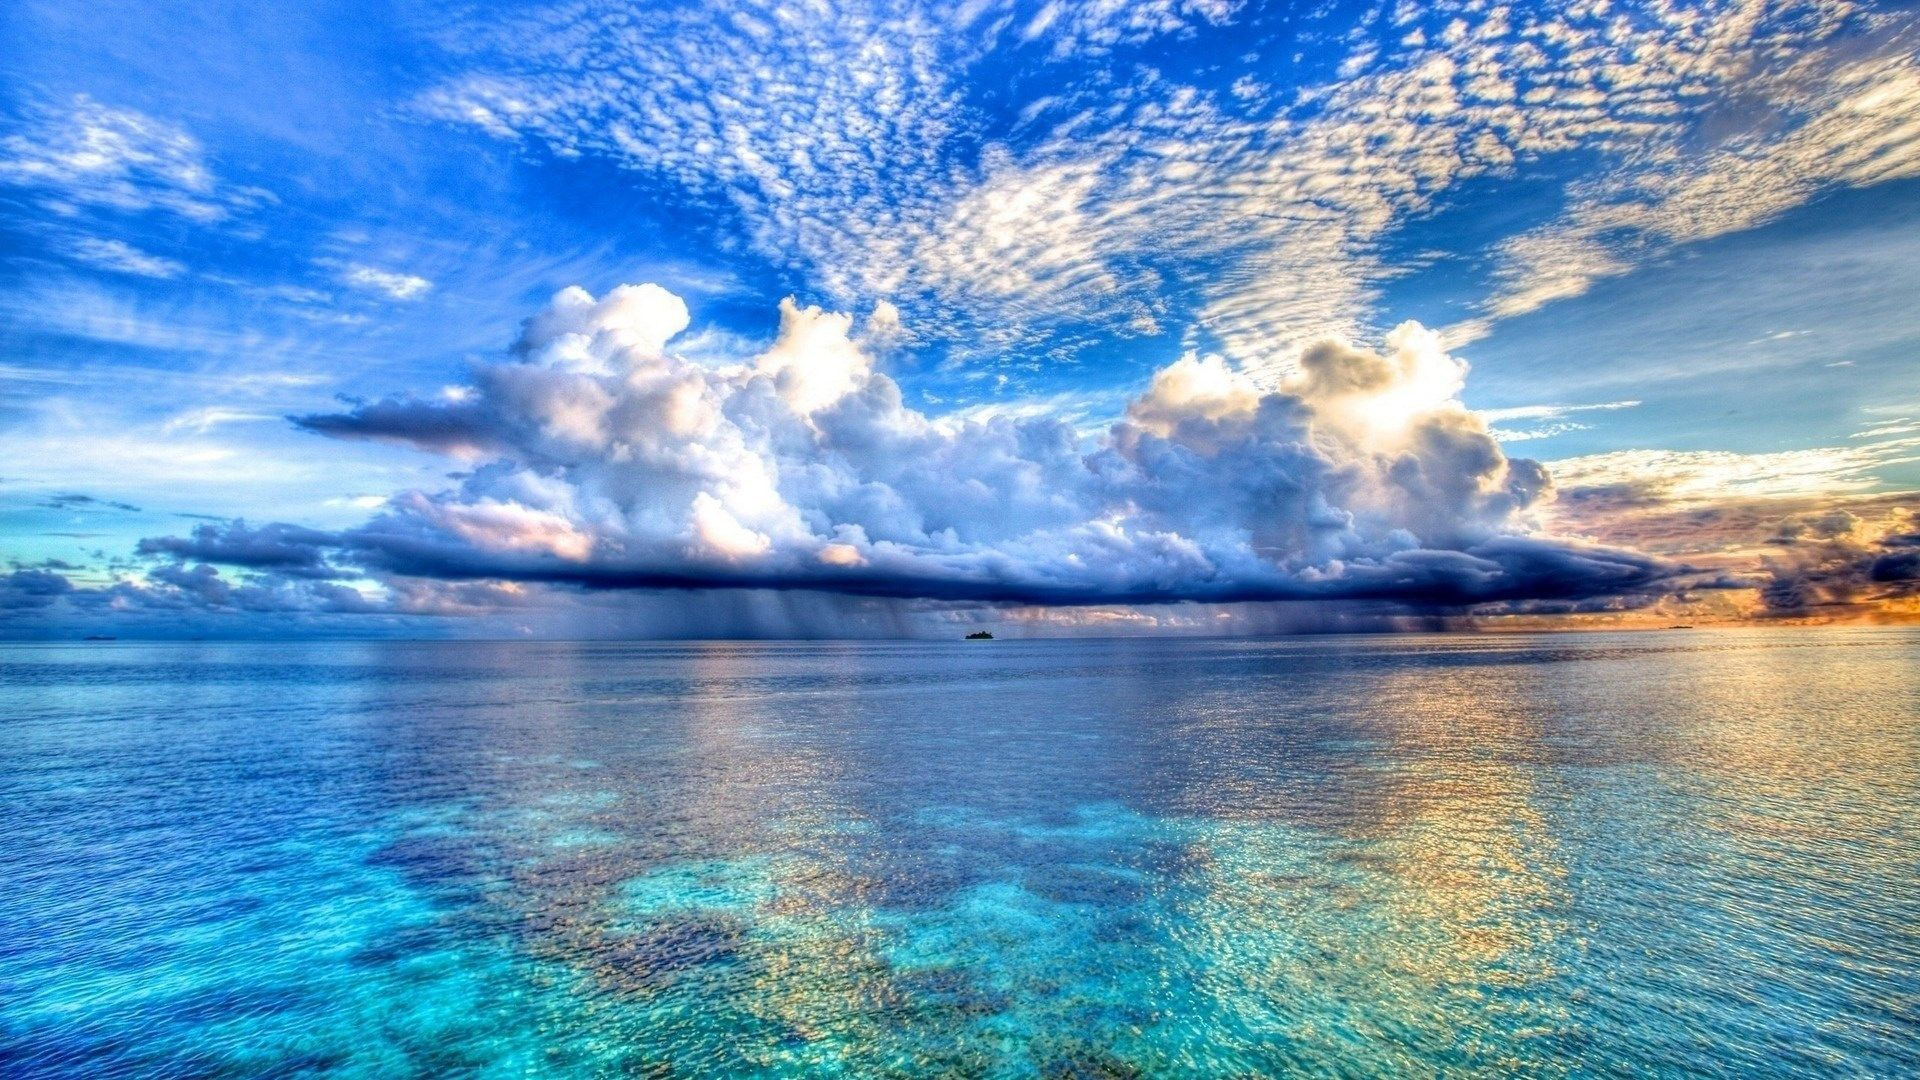 Nature Blue Sea And Clouds Backgrounds Wallpapers Hd Beautiful Nature Scenery Beautiful World